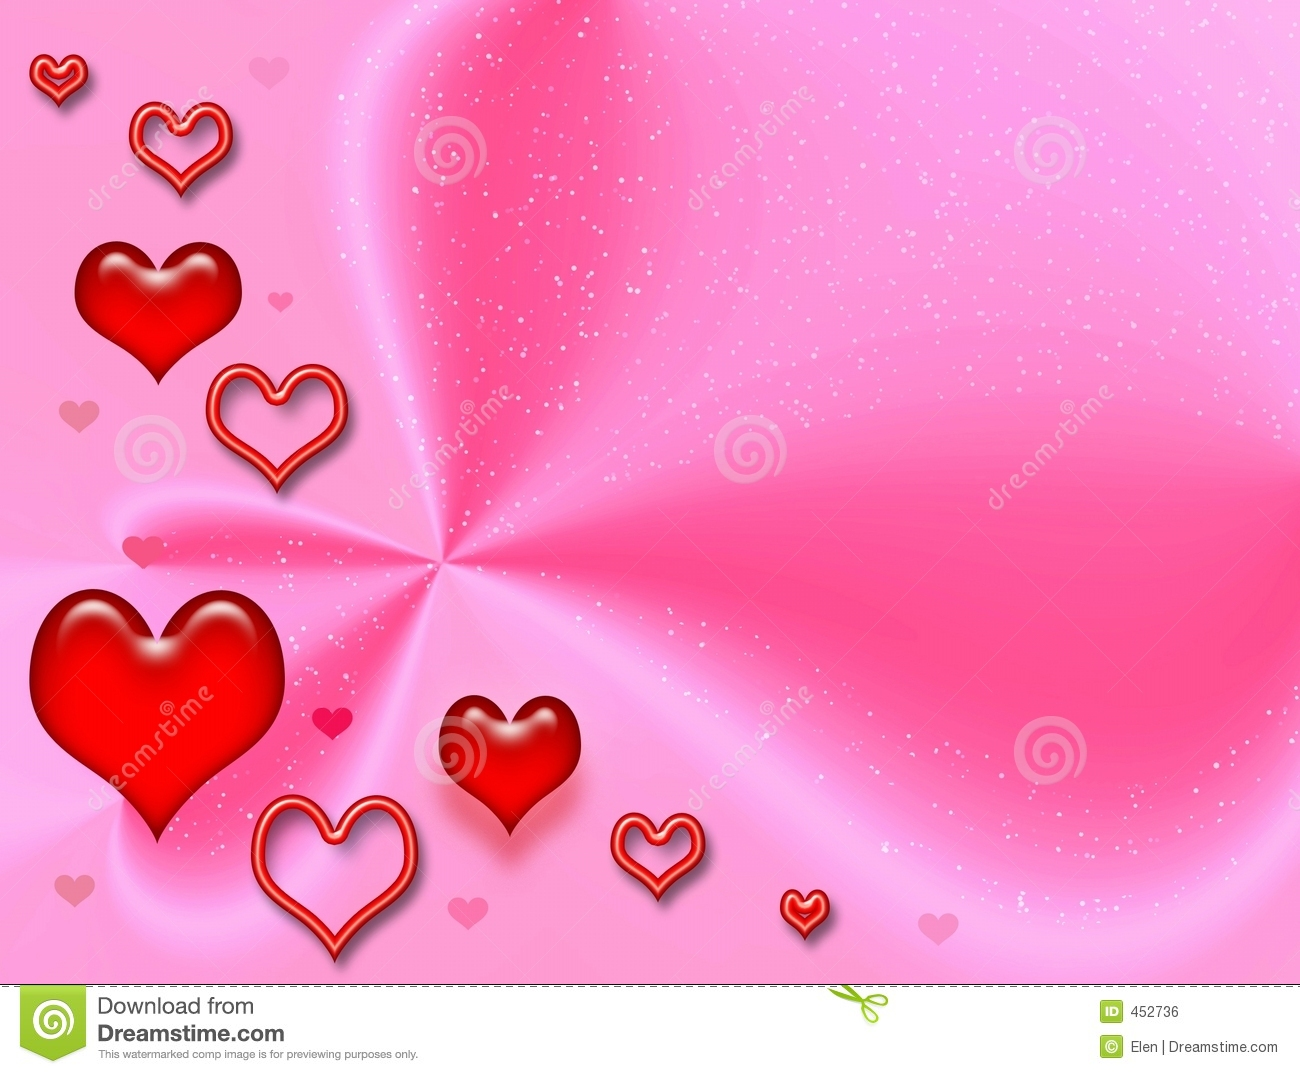 Download Pink Celebratory Card To The Valentine's Day Stock Illustration - Illustration of decoration, element: 452736